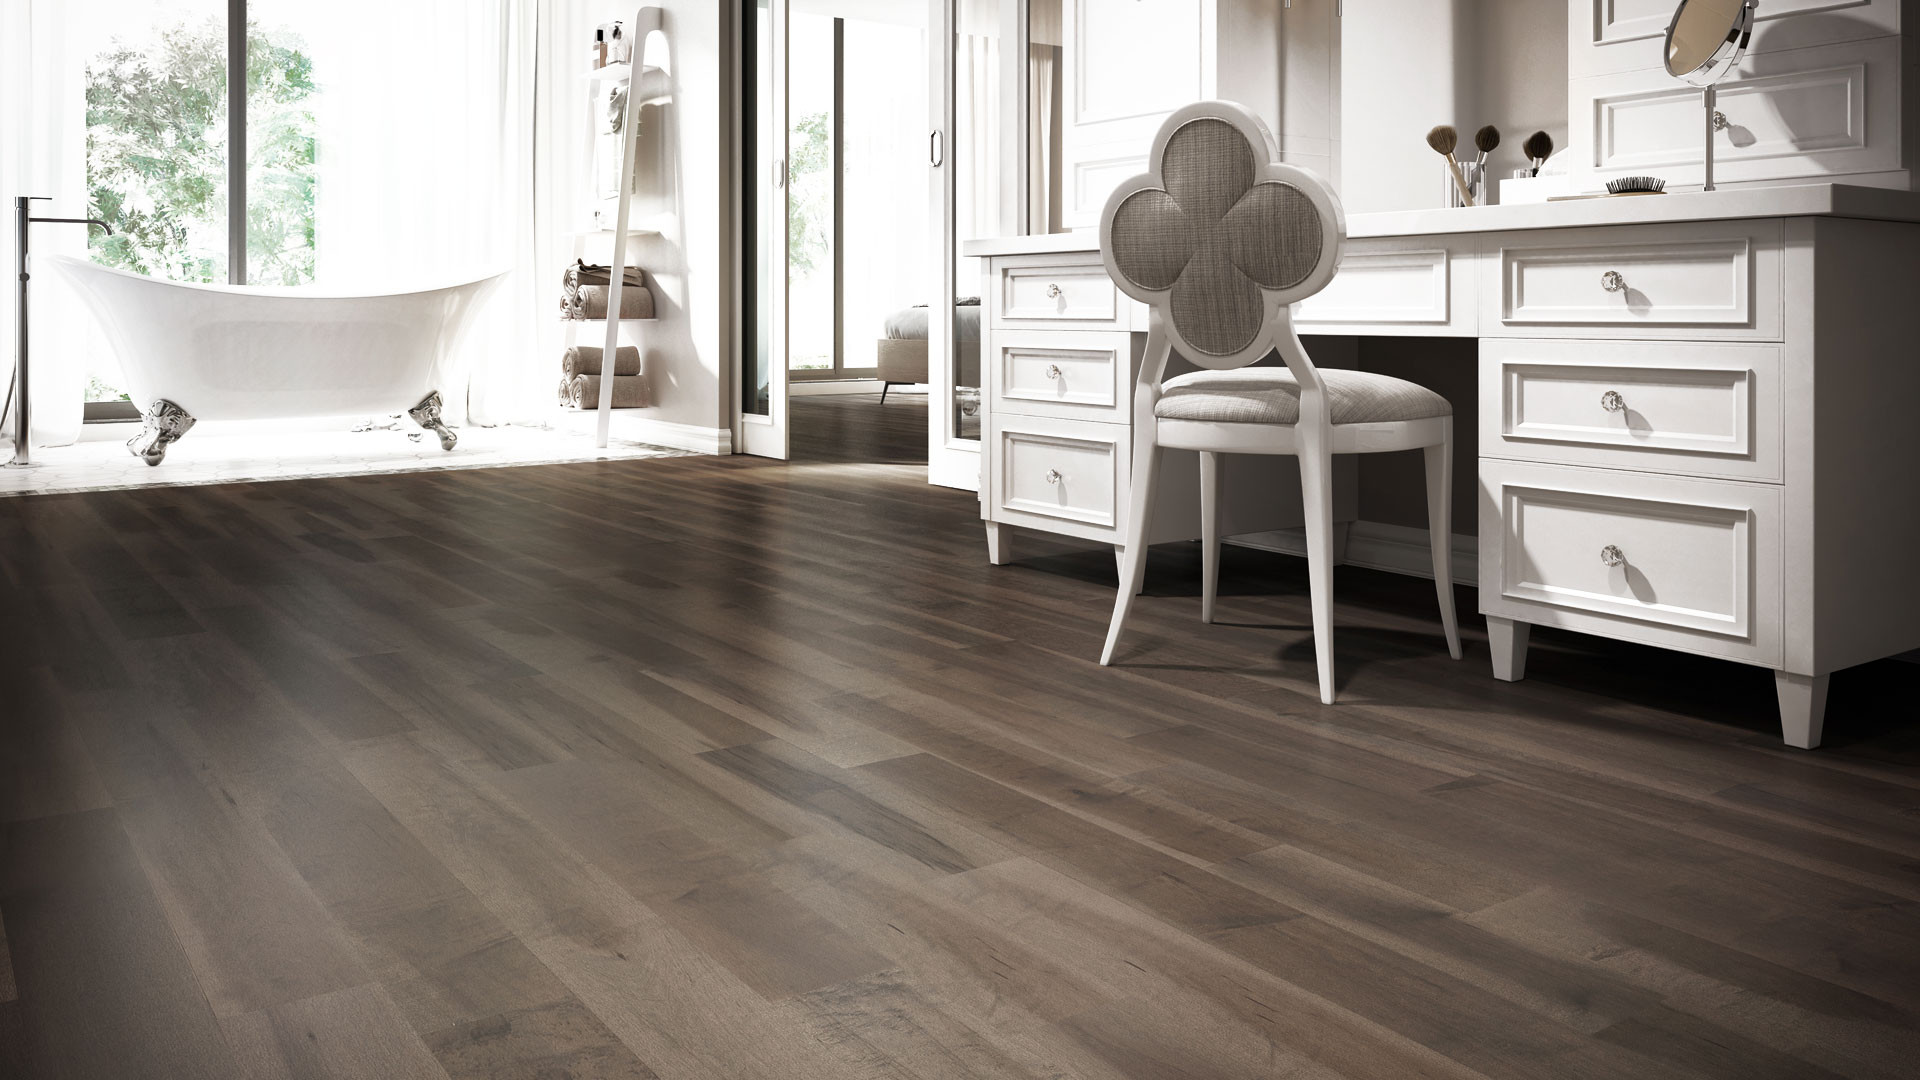 Hardwood Flooring Las Vegas Of 4 Latest Hardwood Flooring Trends Lauzon Flooring Pertaining to Learn More About Our Pure Genius by Reading Our Blog Post the Smartest Hardwood Flooring Weve Ever Seen